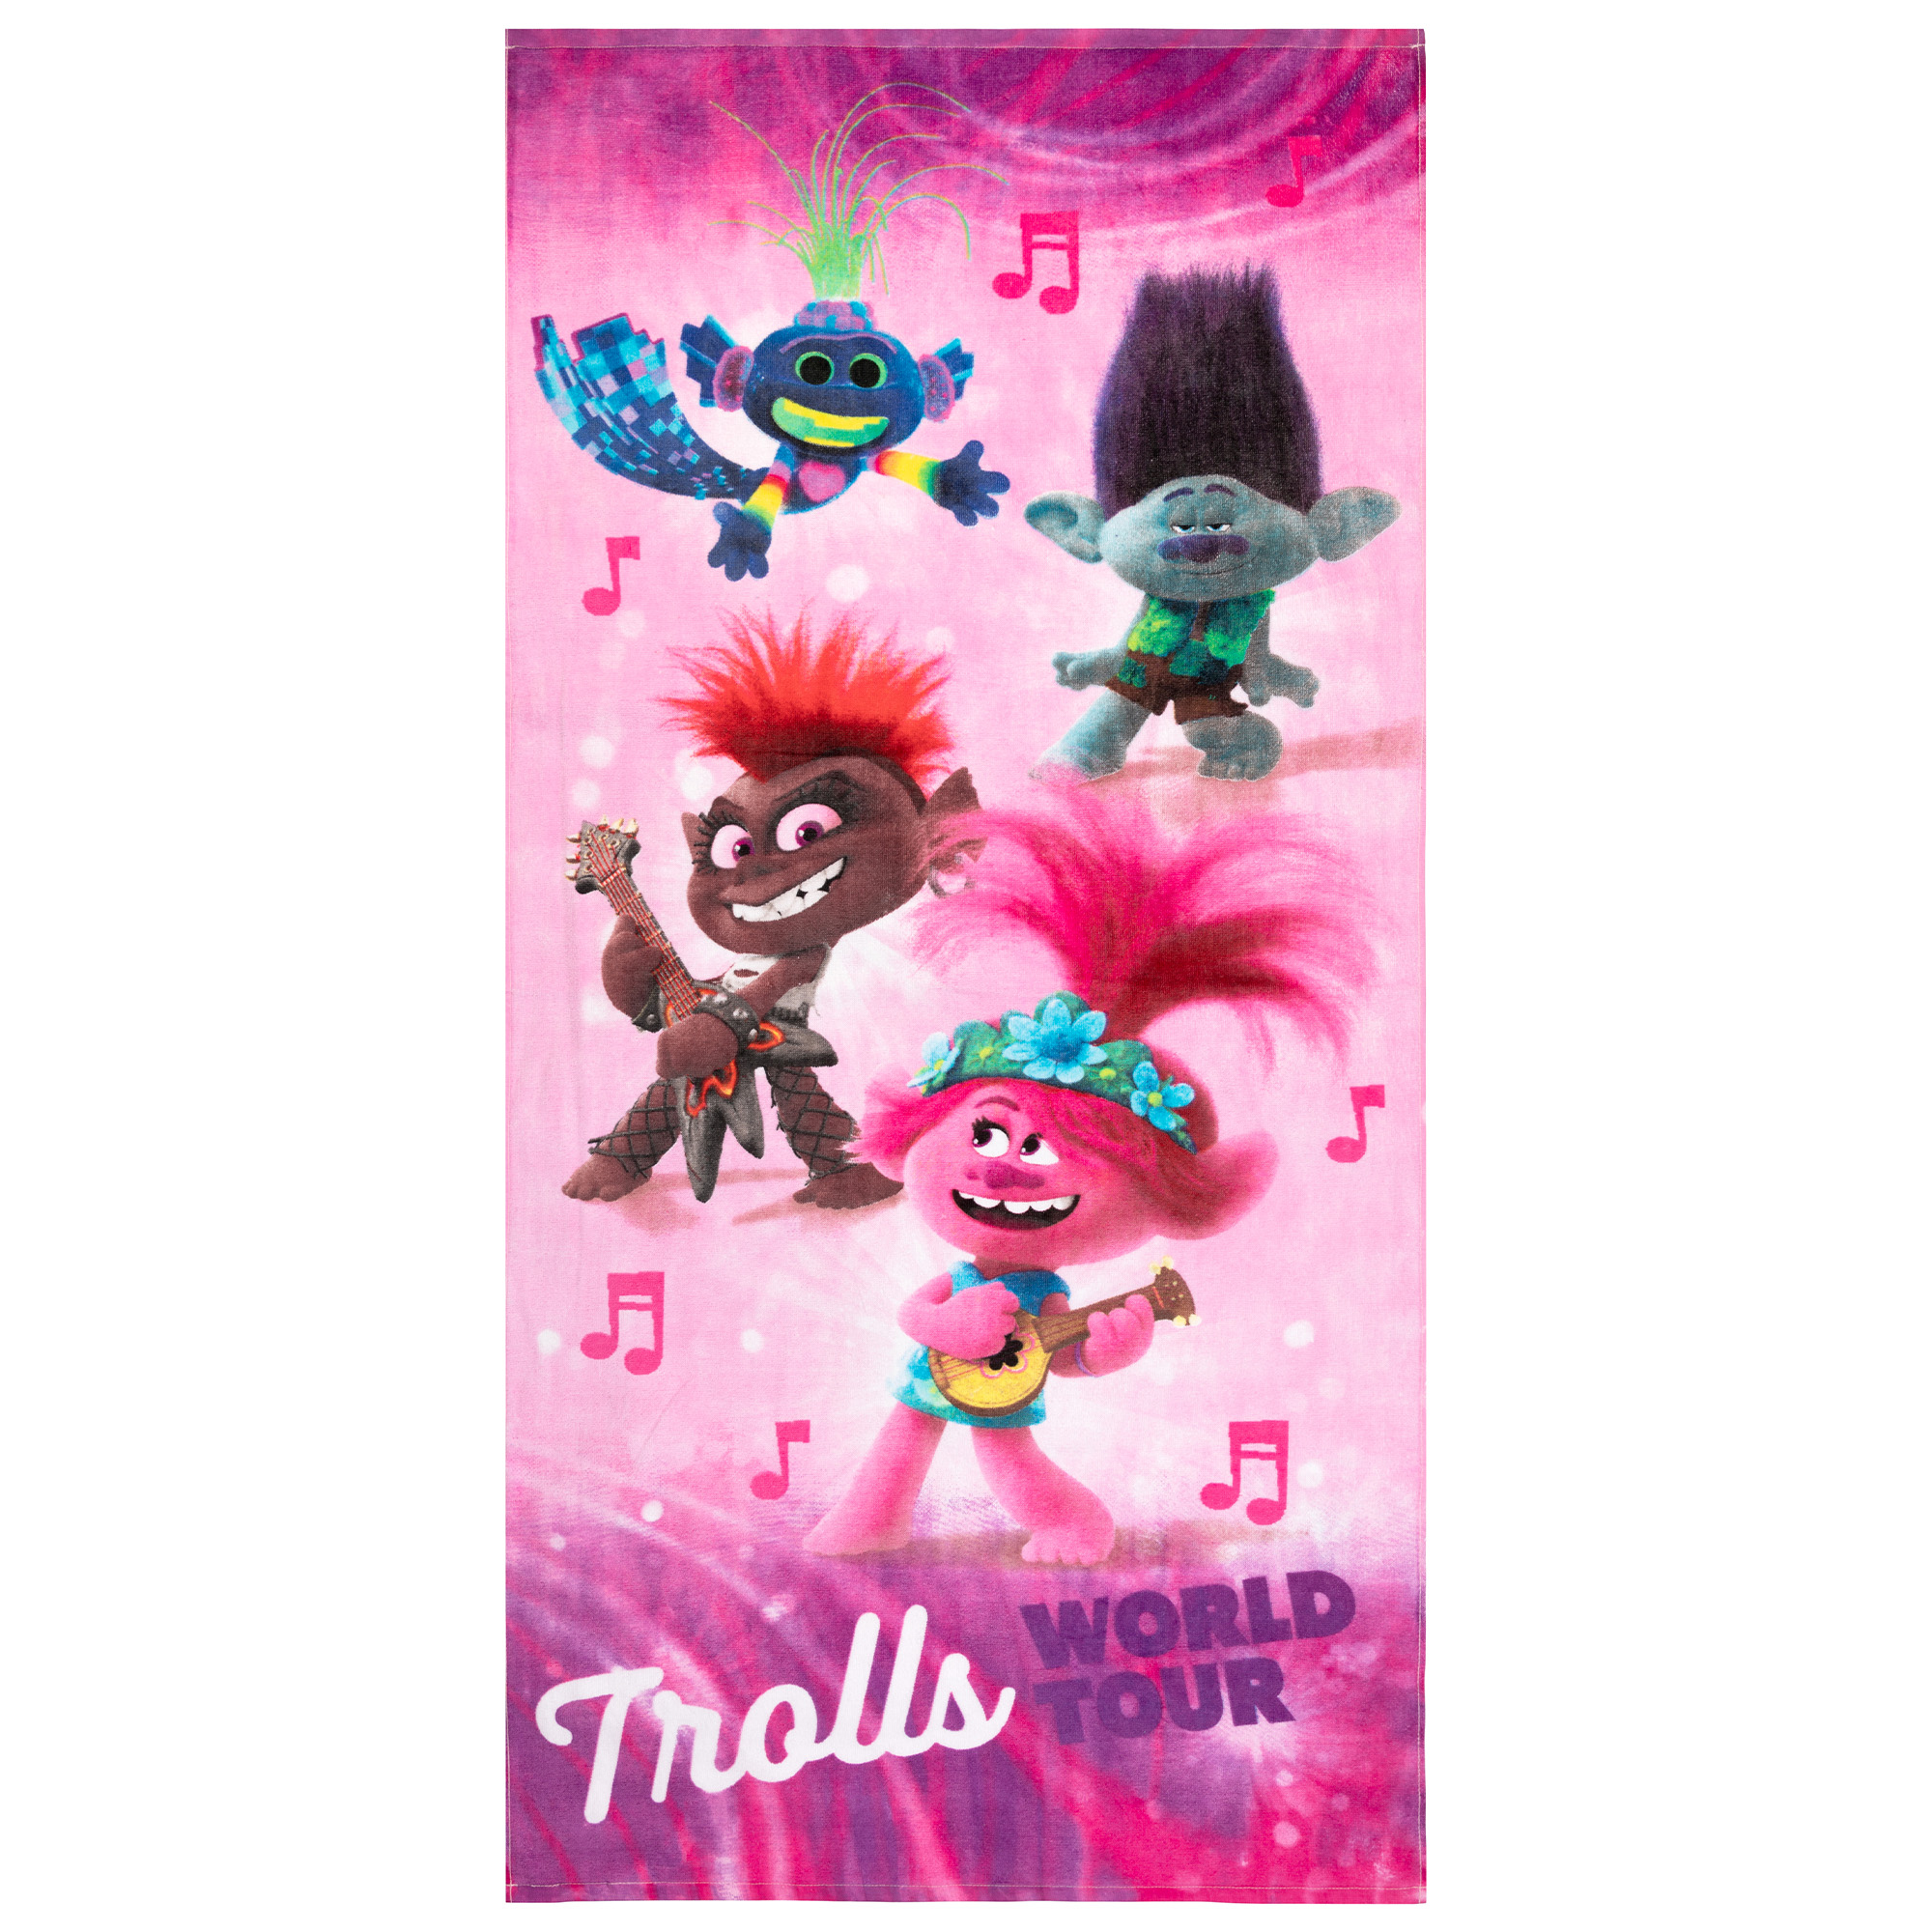 28 Inches x 58 Inches Trolls 2 World Tour Youth Super Soft Cotton Beach Towel